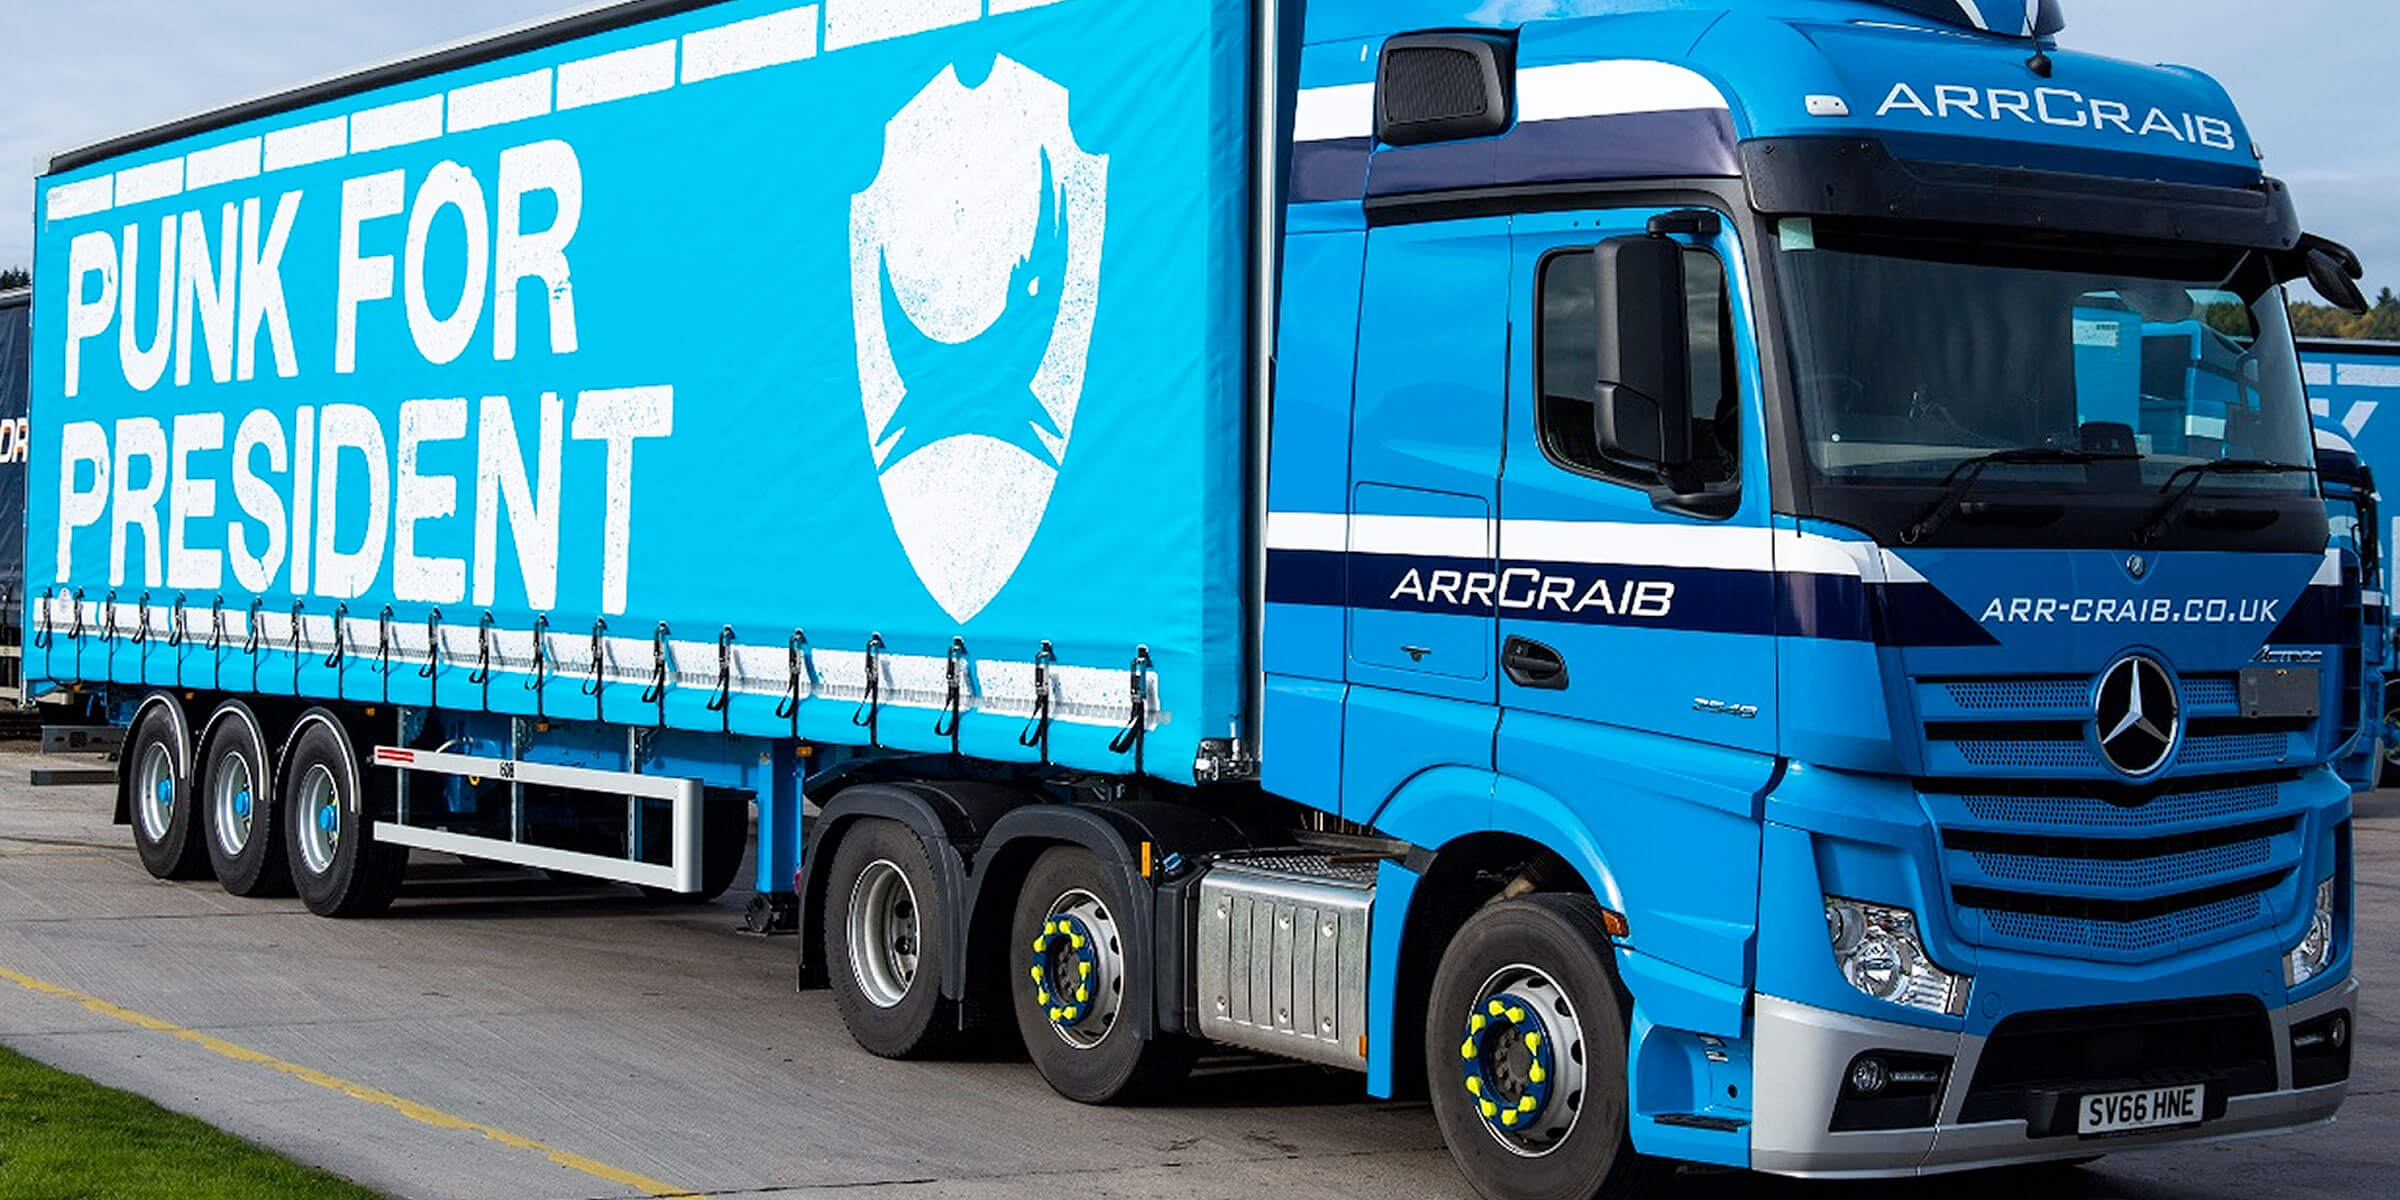 A truck load of beer from BrewDog's brewery in Ellon, Scotland was stolen from the Moto Lymm services in Cheshire on Tuesday.